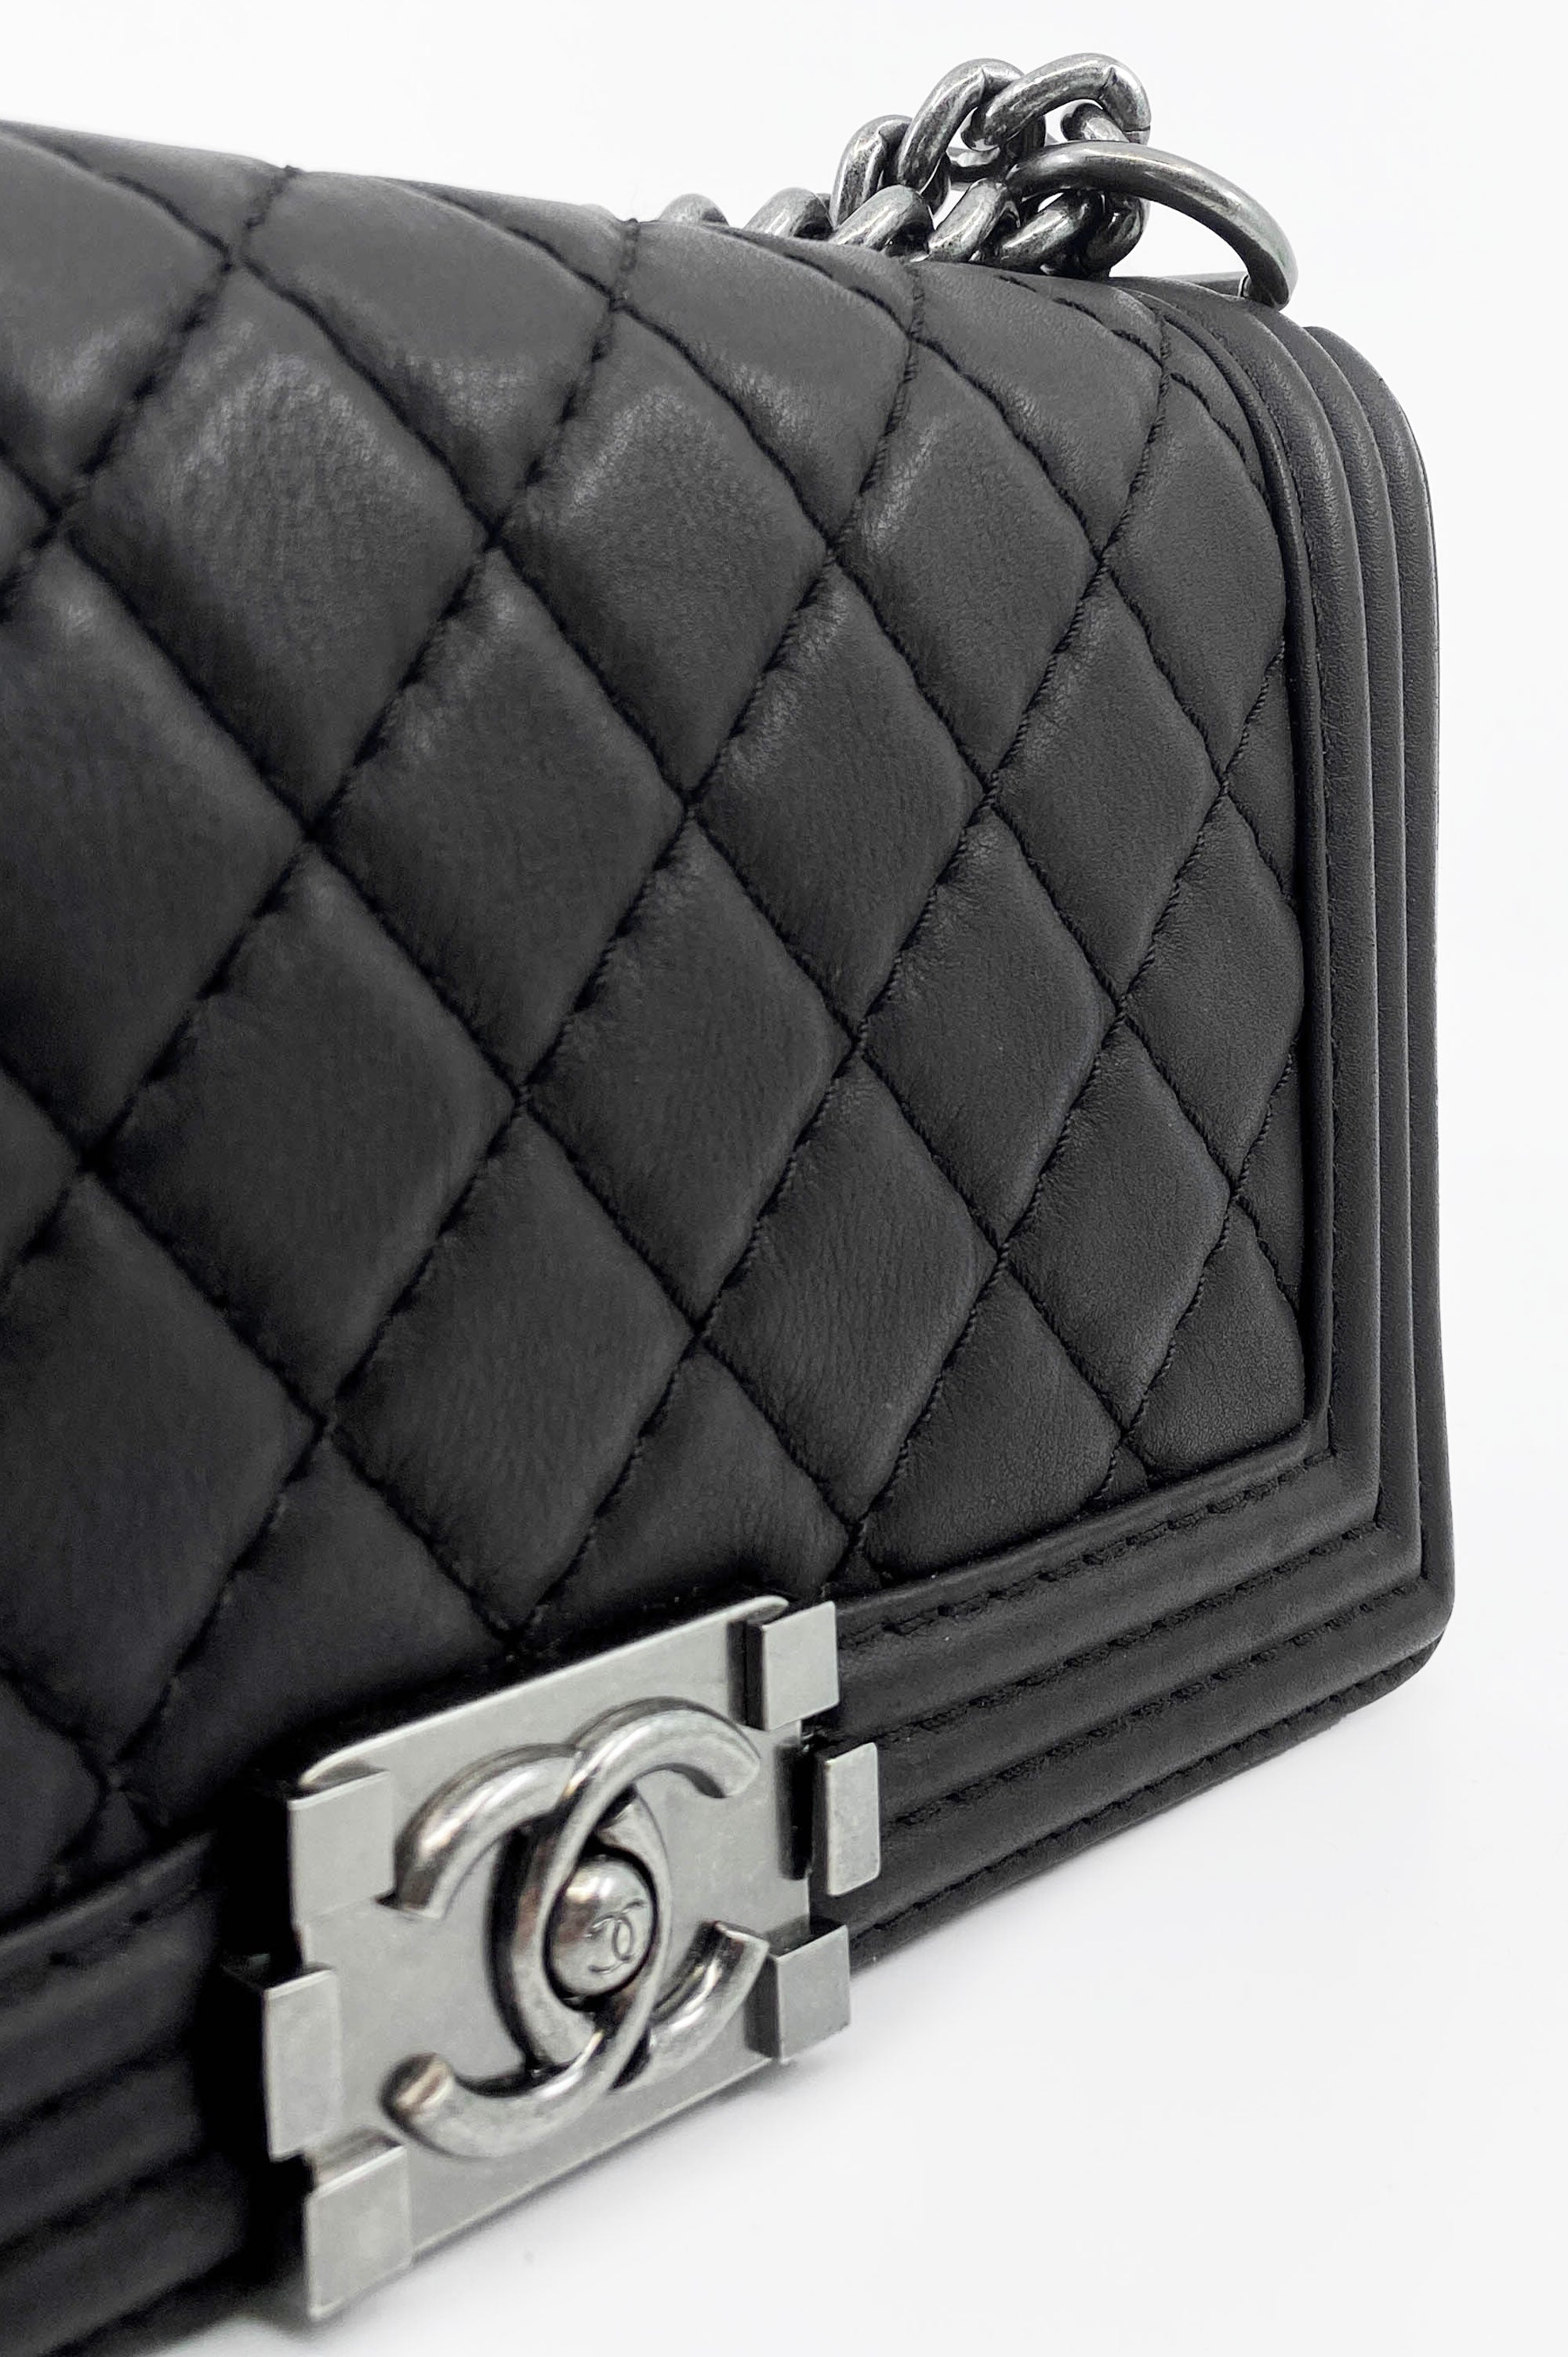 CHANEL Boy Bag Black Calf Leather